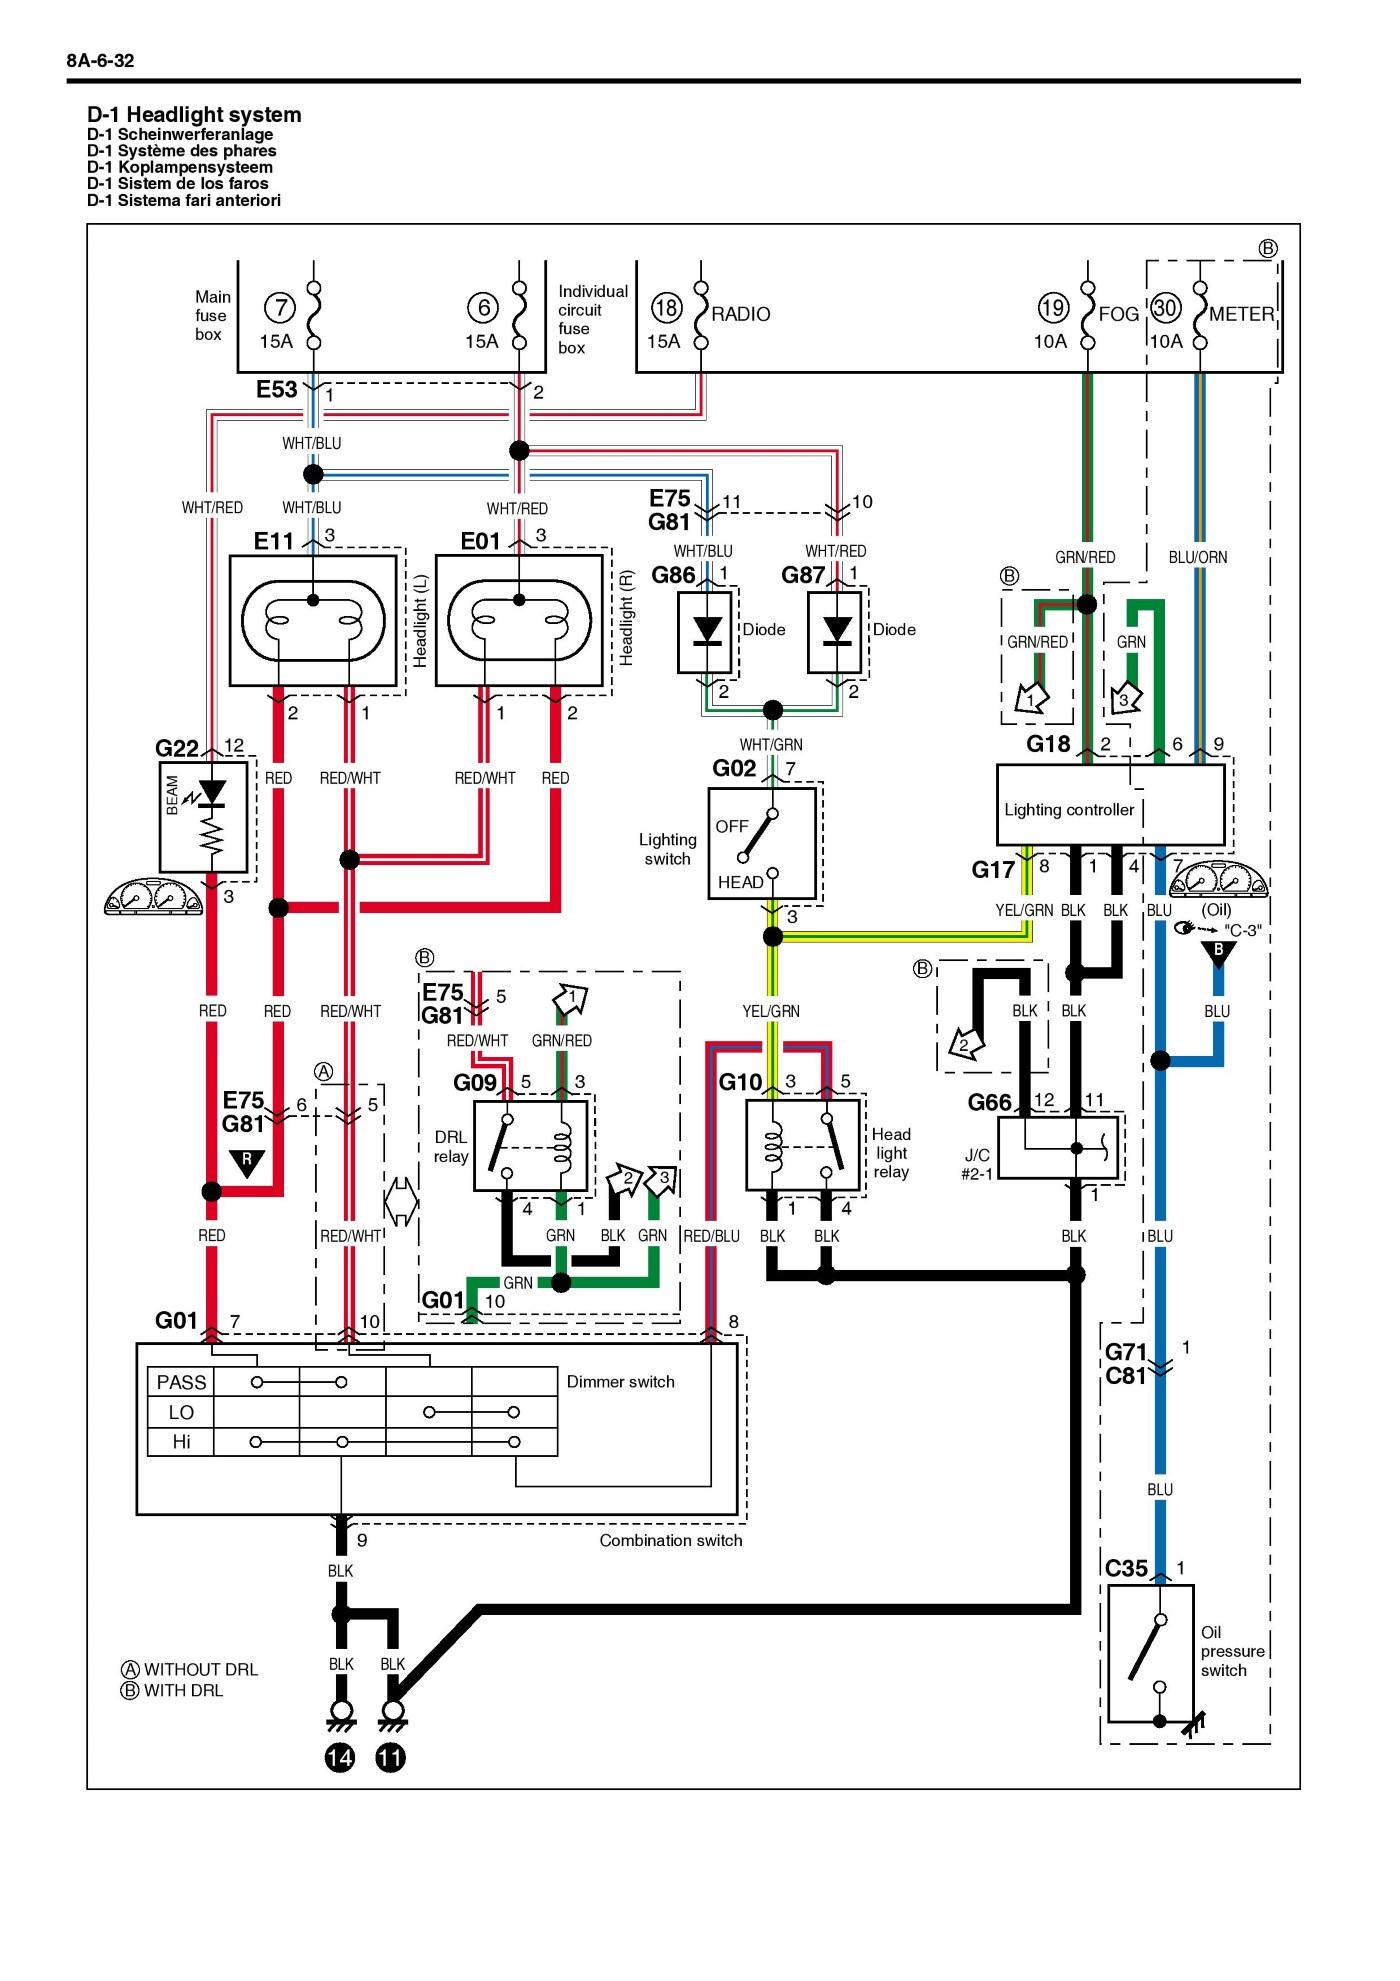 Charming Suzuki Ignis Wiring Diagram Gallery - Best Image Diagram ...